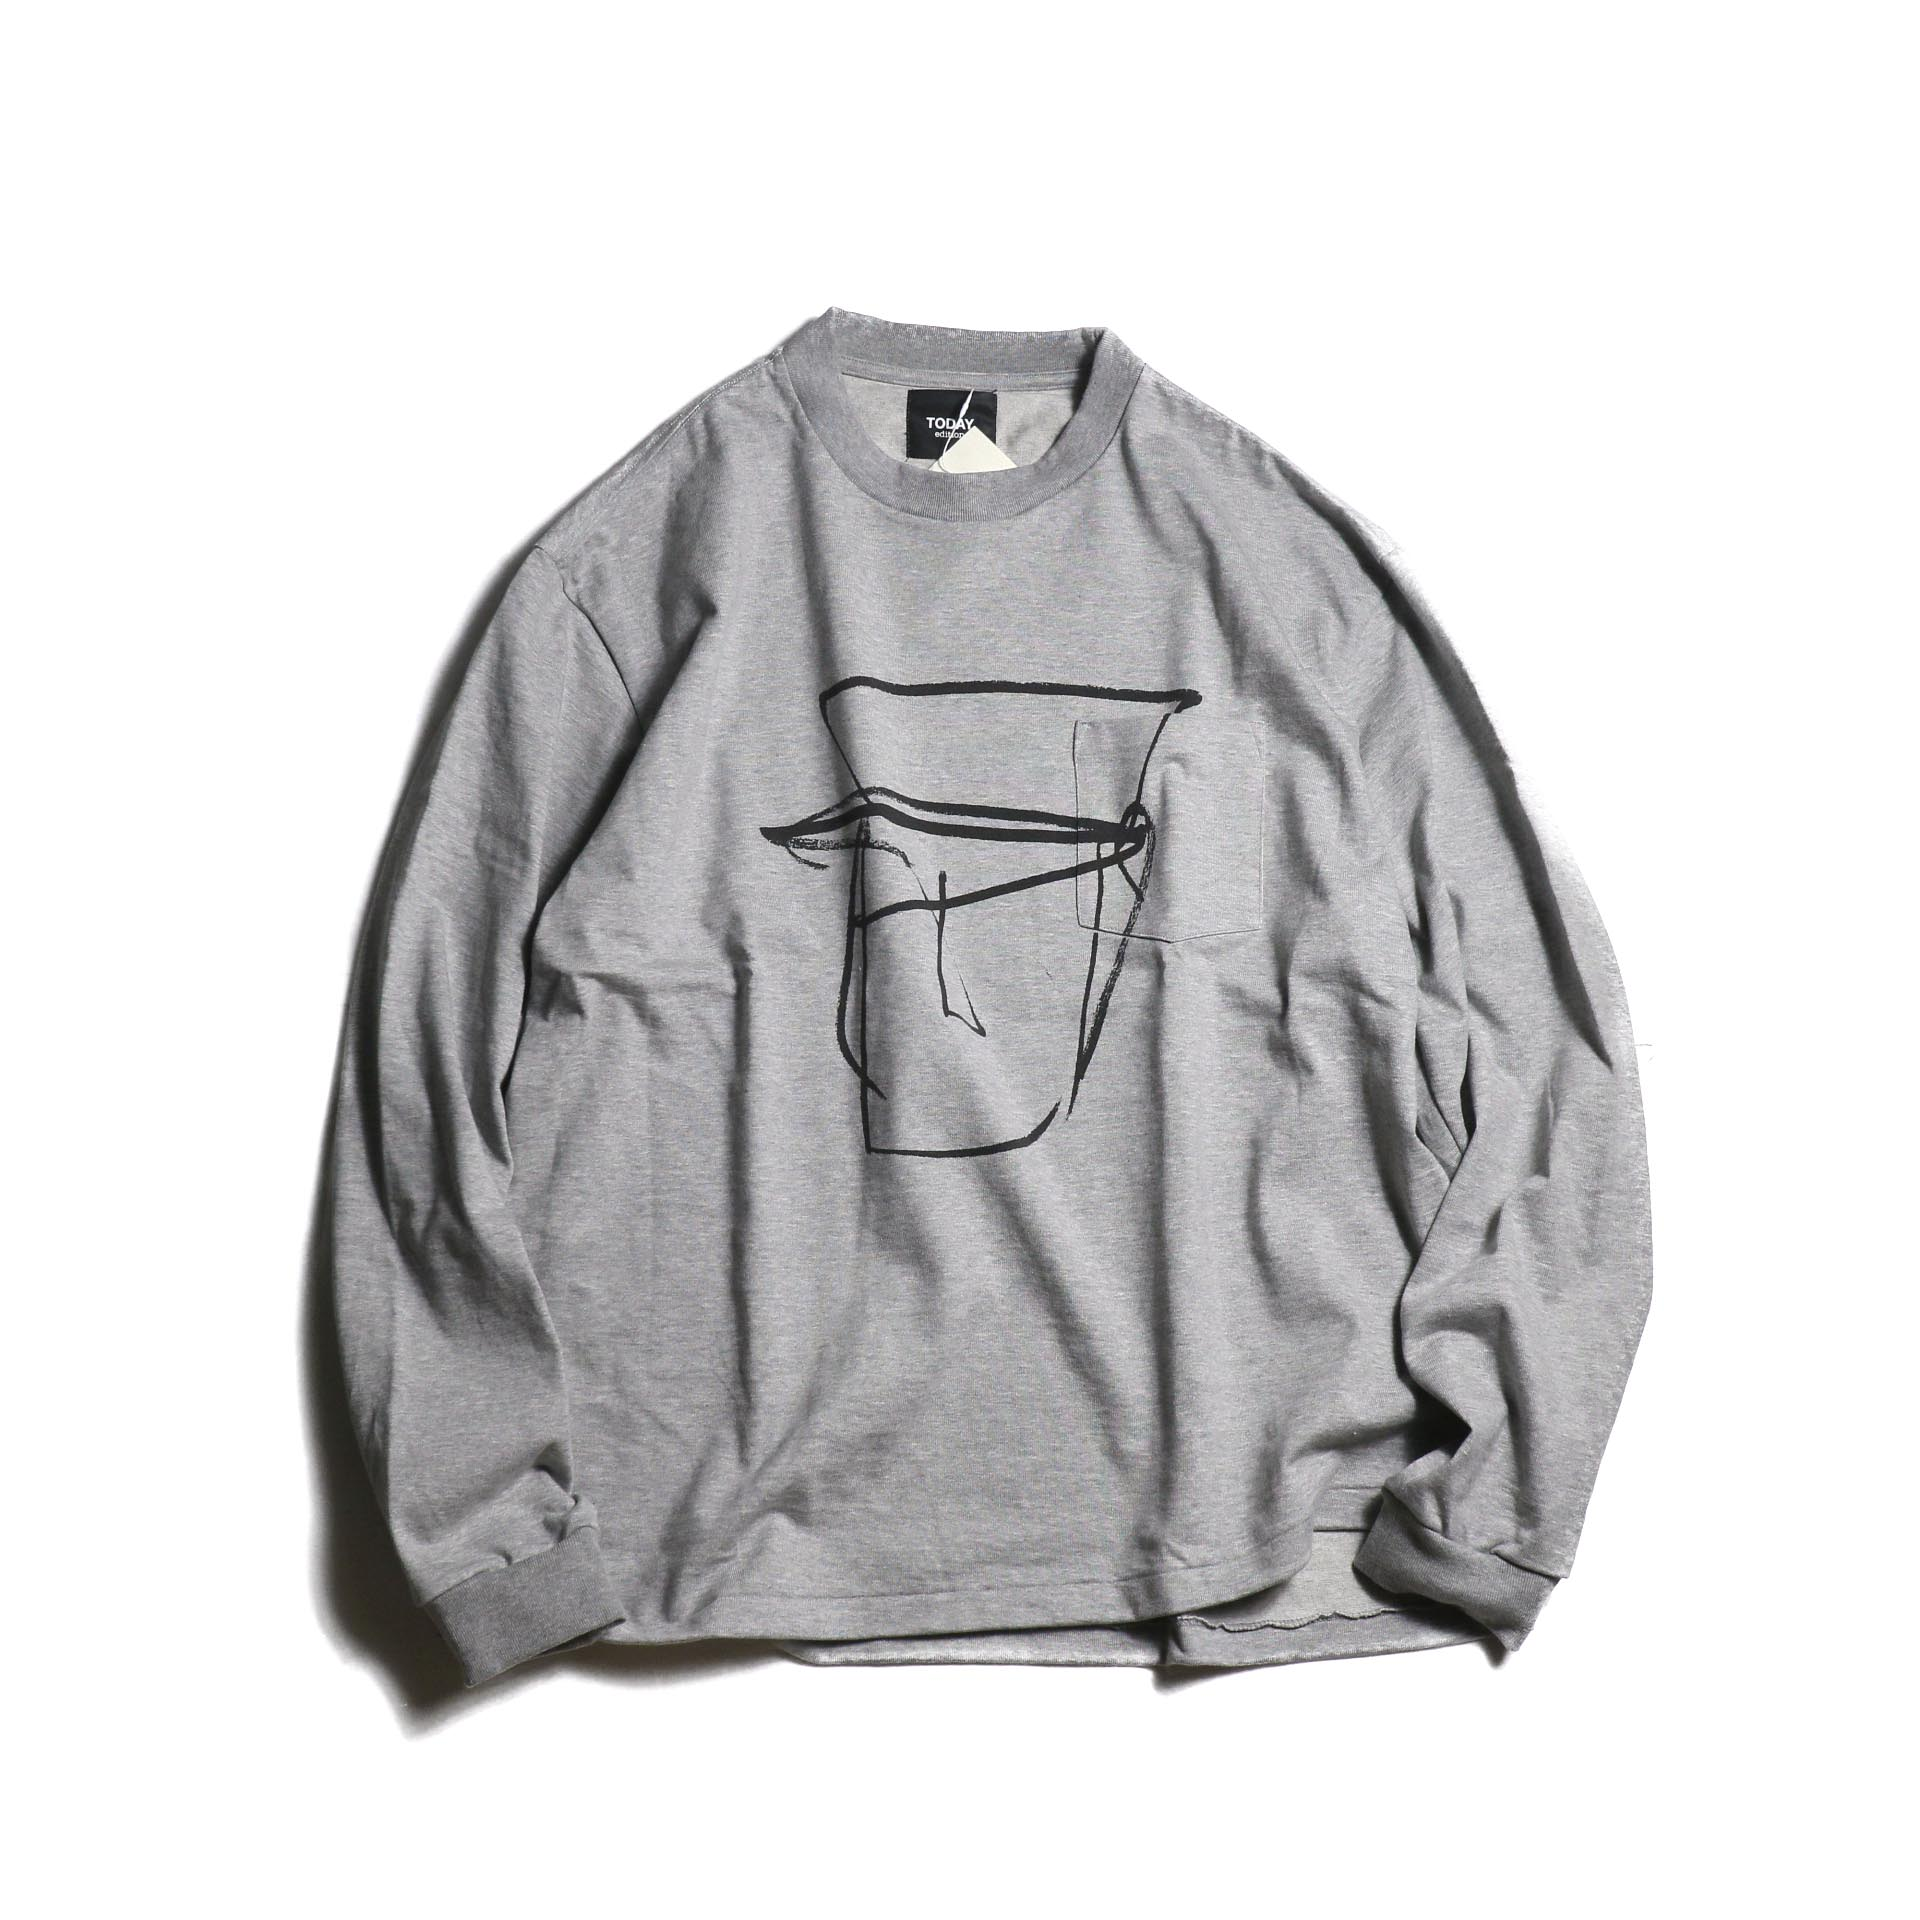 TODAY edition / Drawing Tee #1 (Gray)